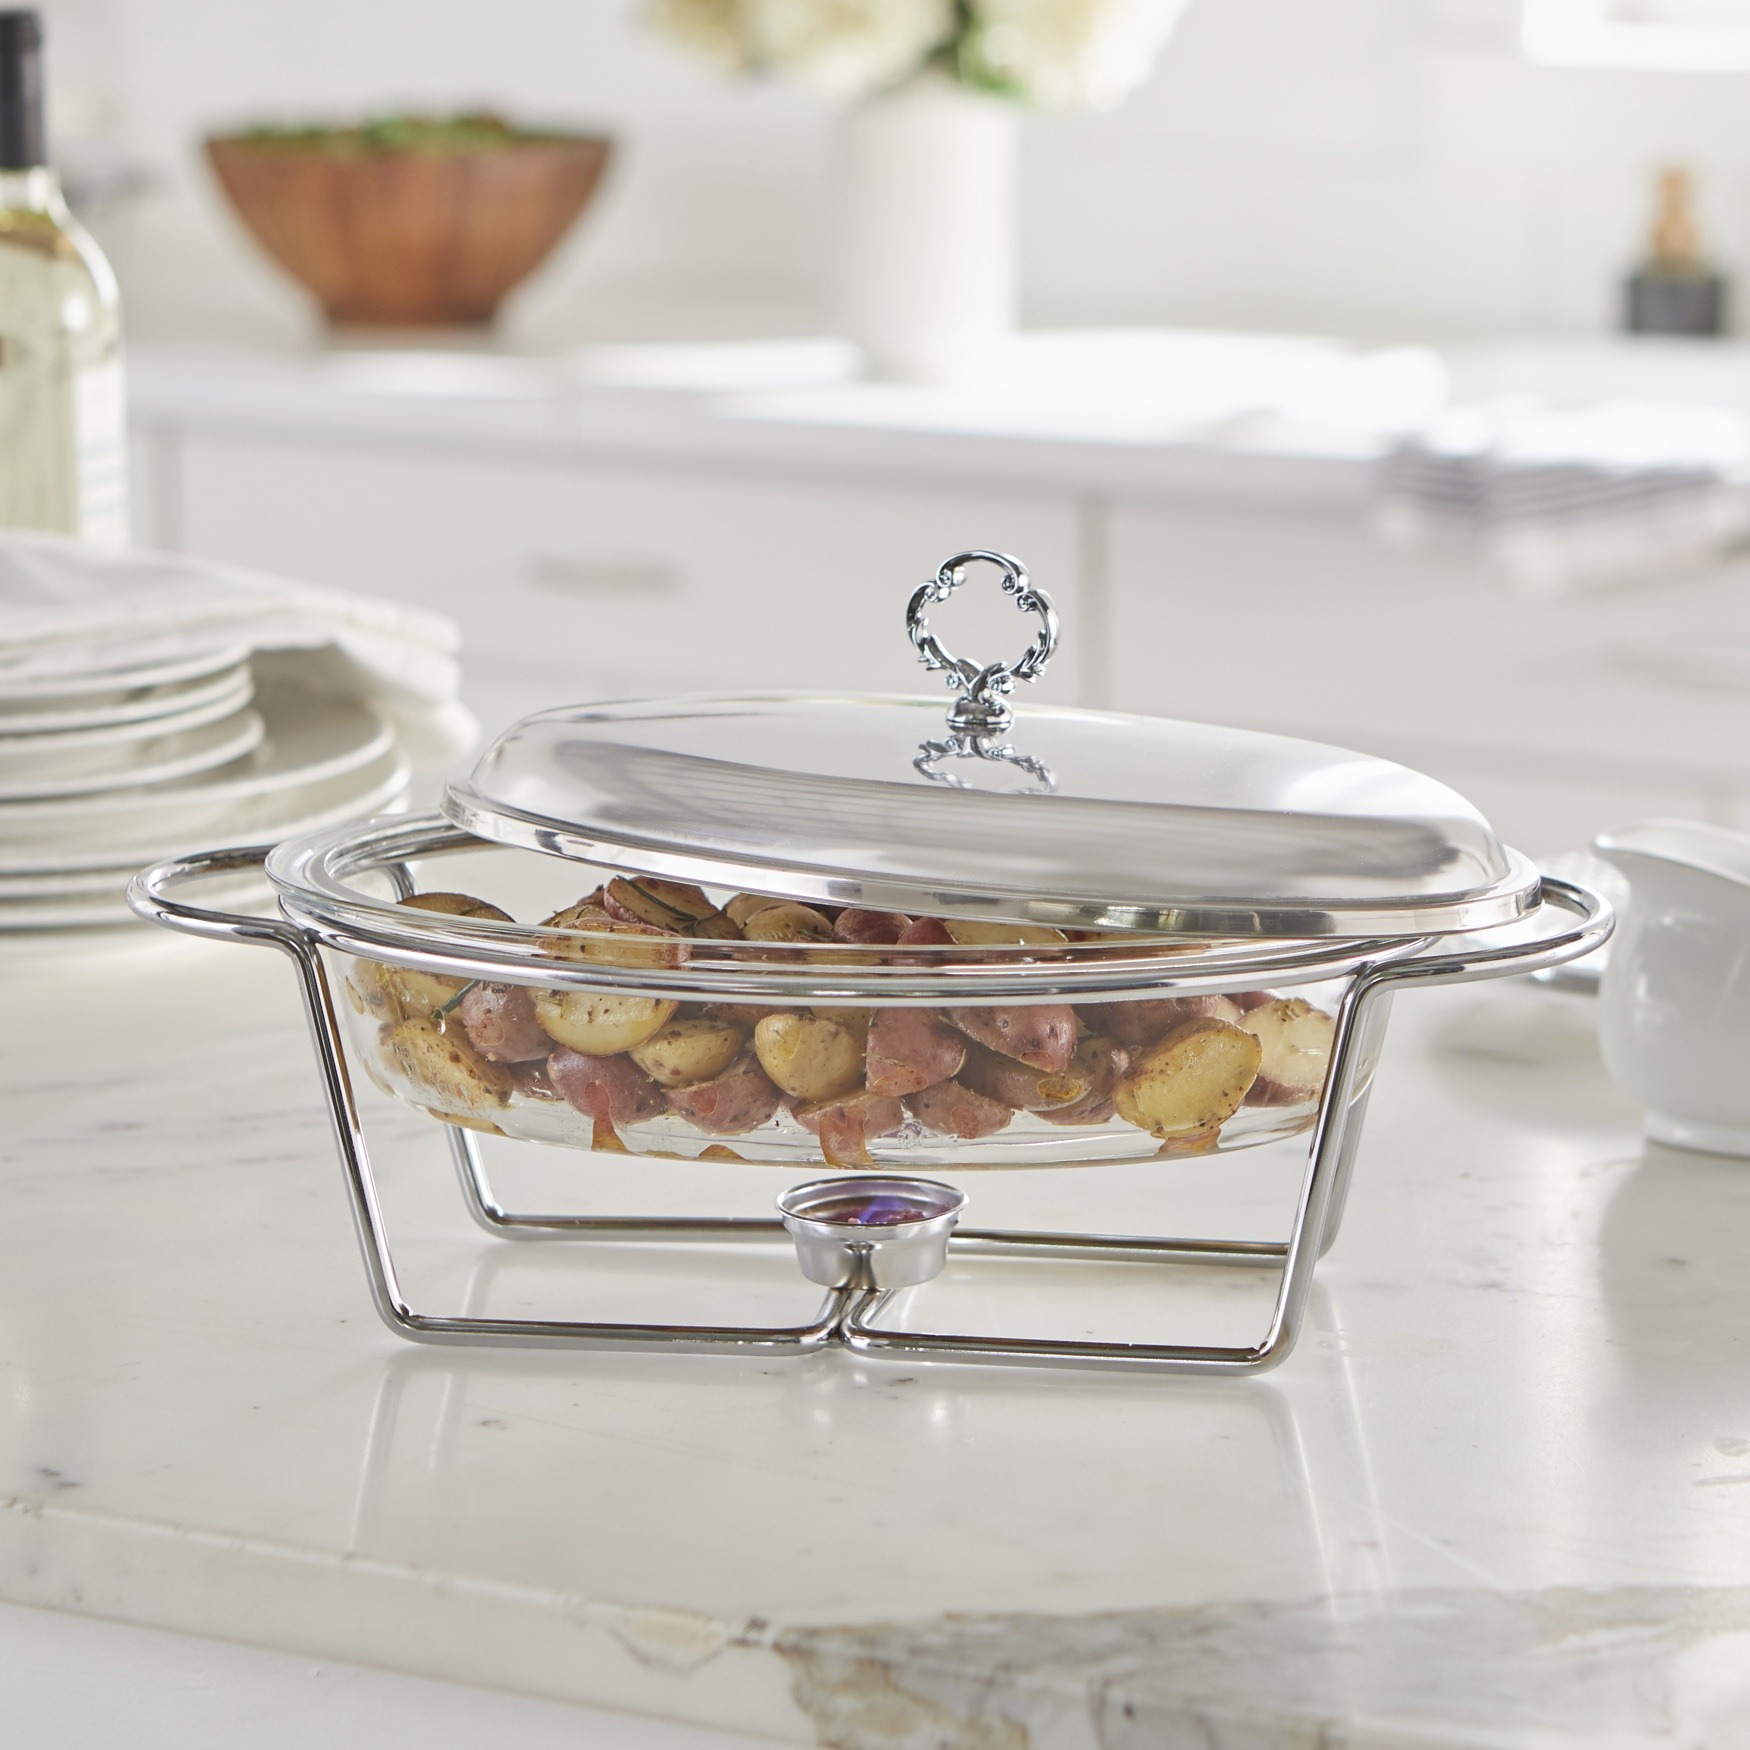 2.5-Qt. Oval Glass Chafing Dish, STAINLESS